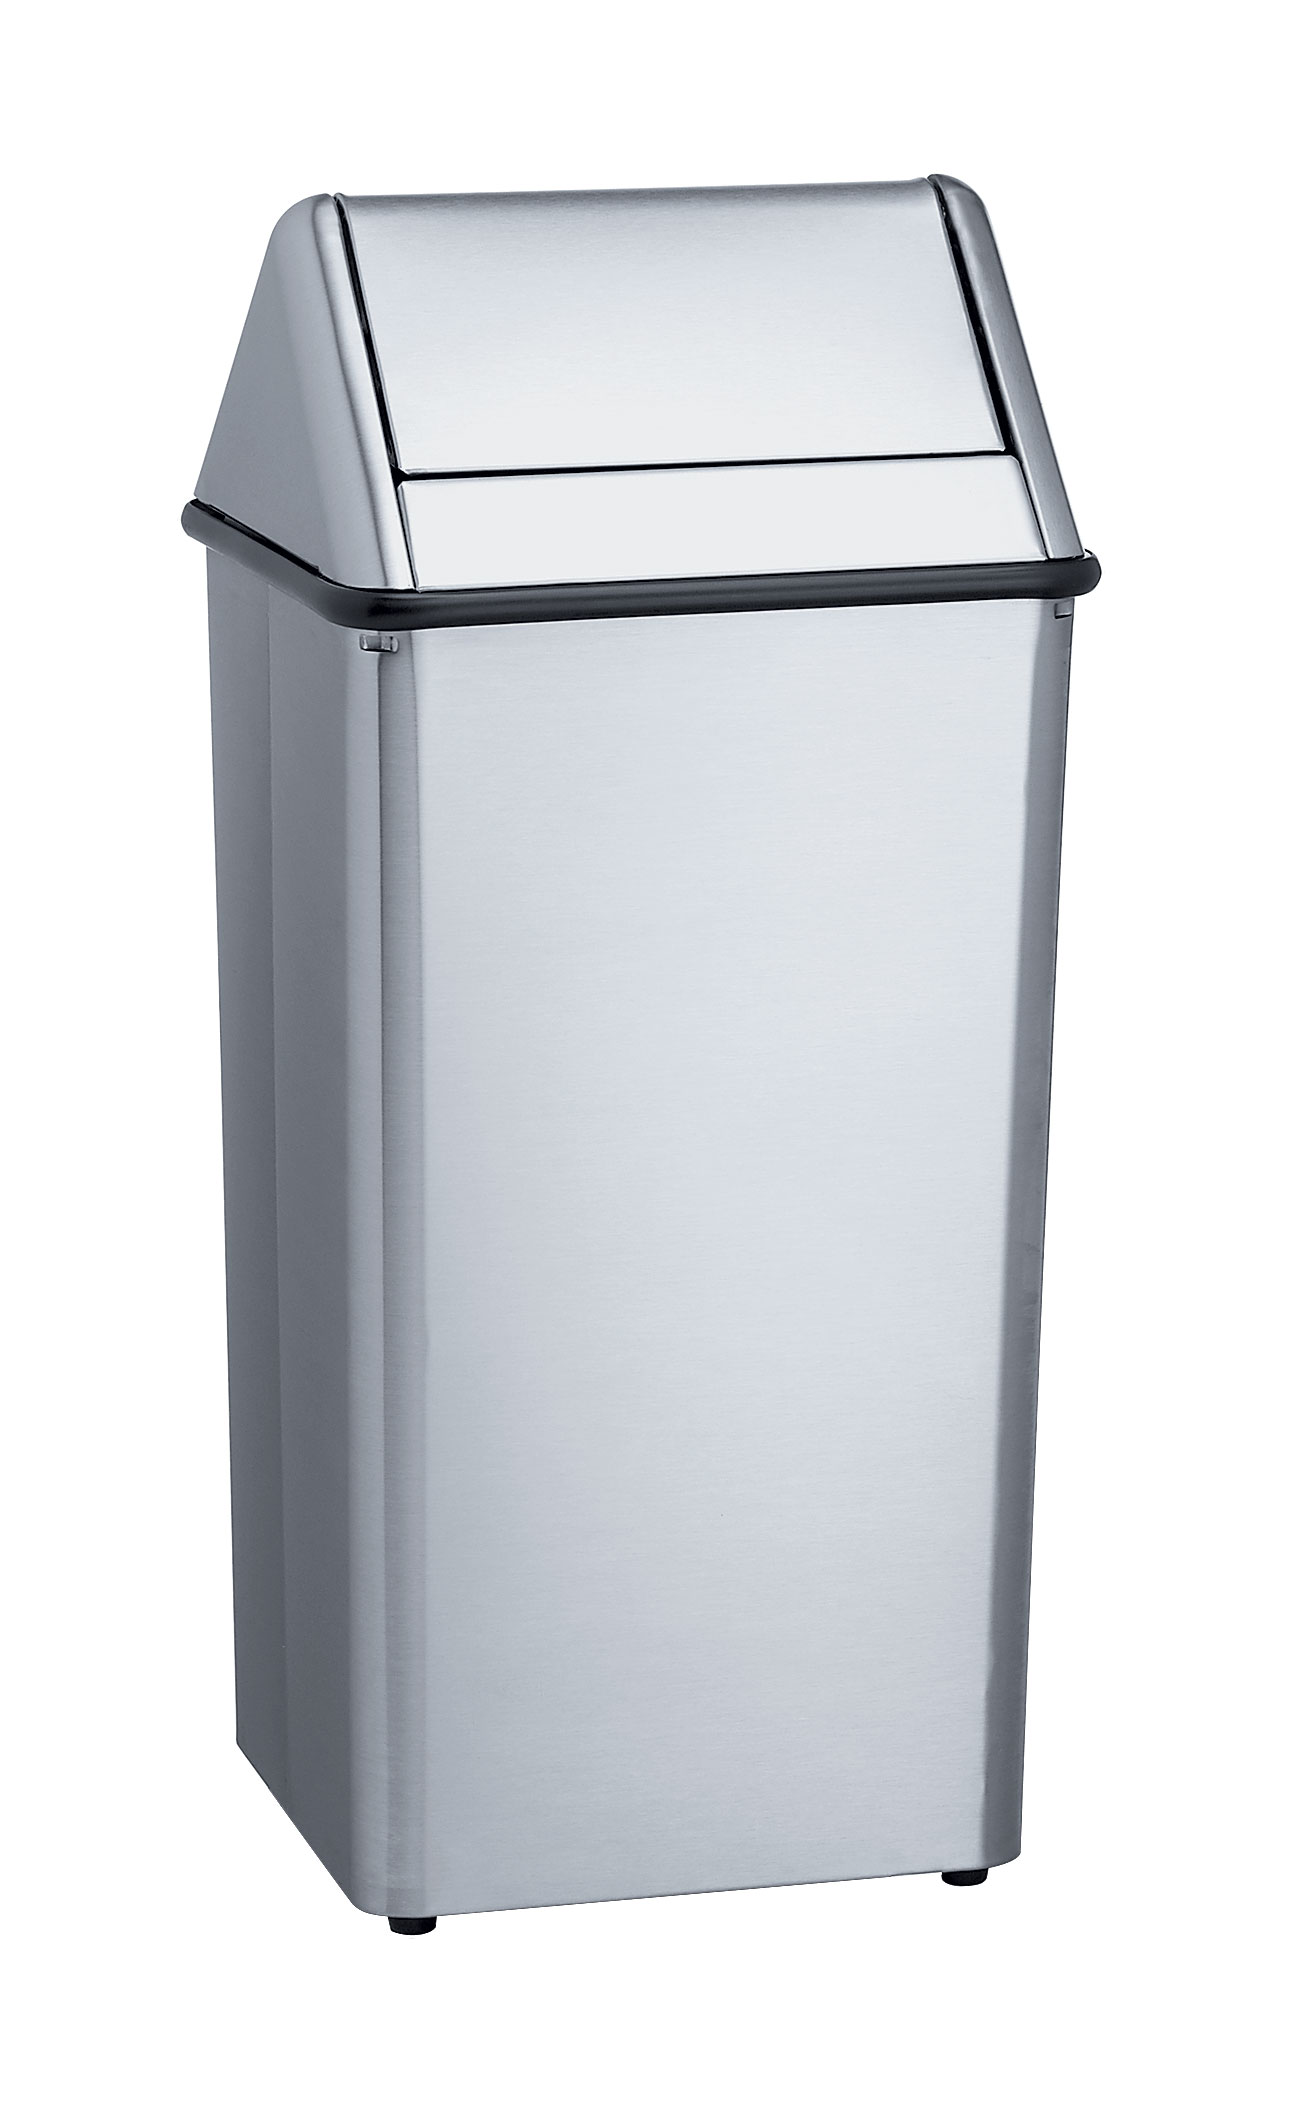 Free standing waste receptacle bradley corporation - Commercial bathroom waste receptacles ...